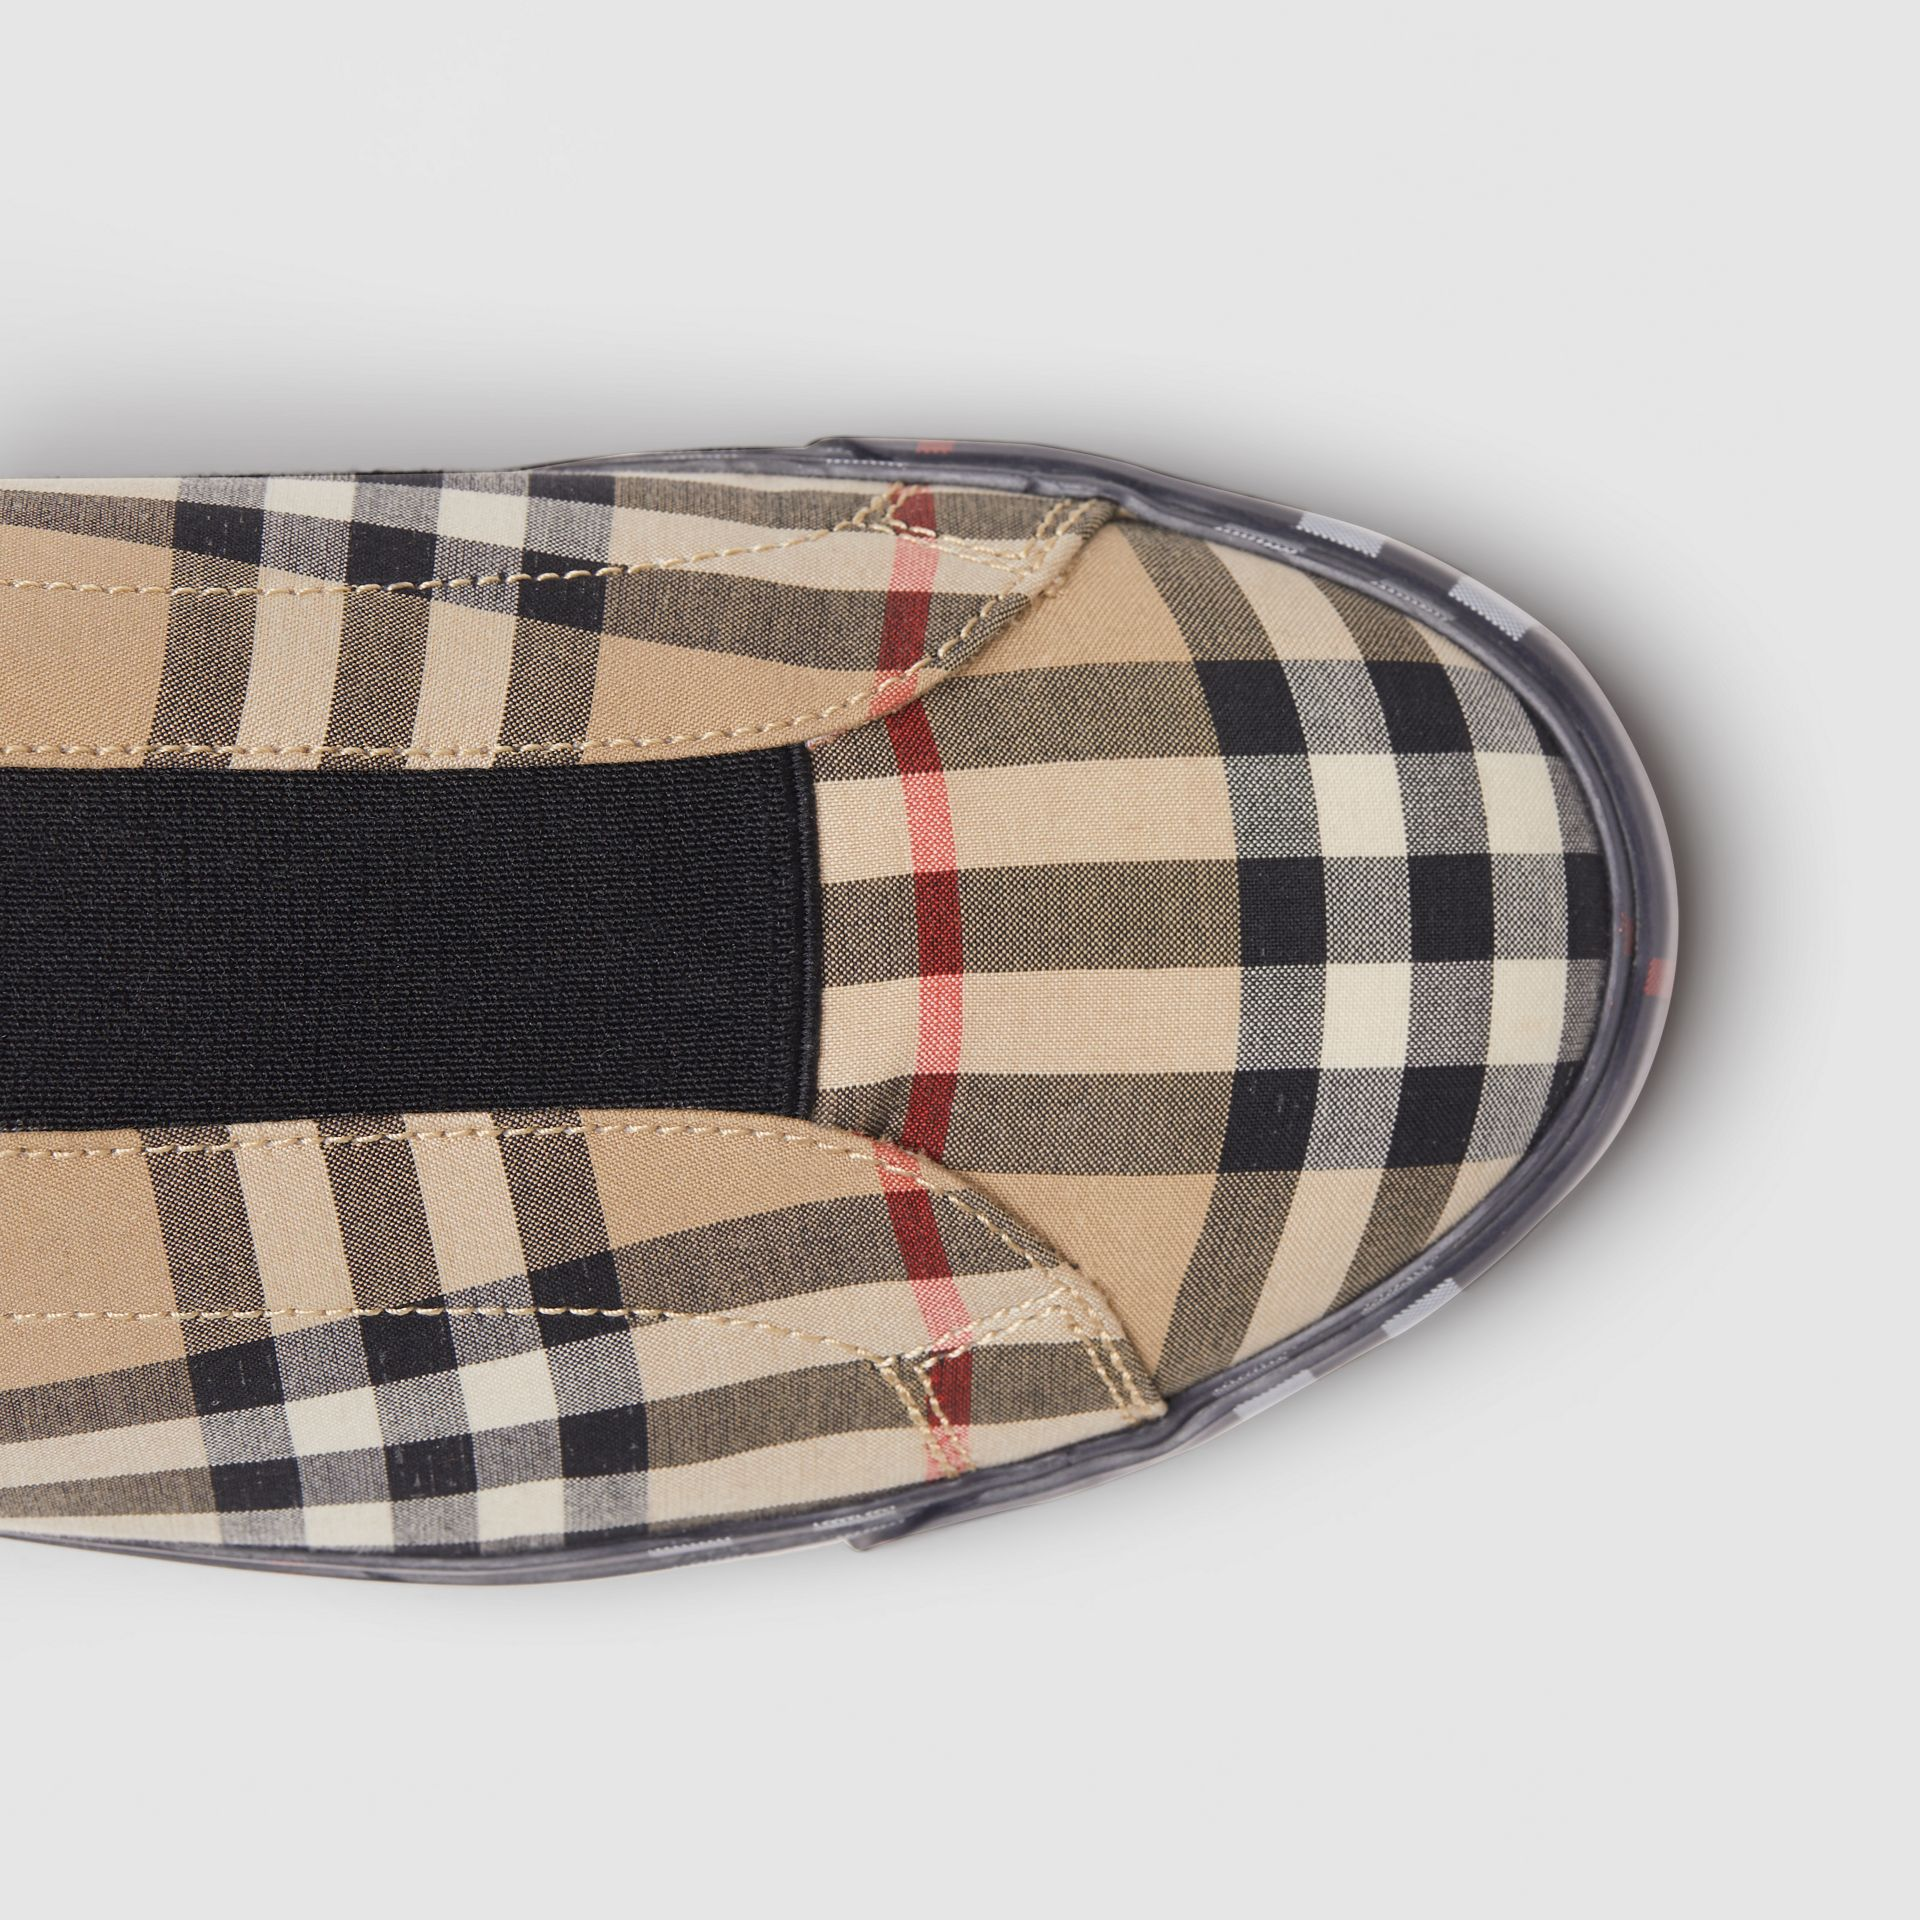 Contrast Check and Leather Slip-on Sneakers in Archive Beige - Women | Burberry Hong Kong S.A.R - gallery image 1